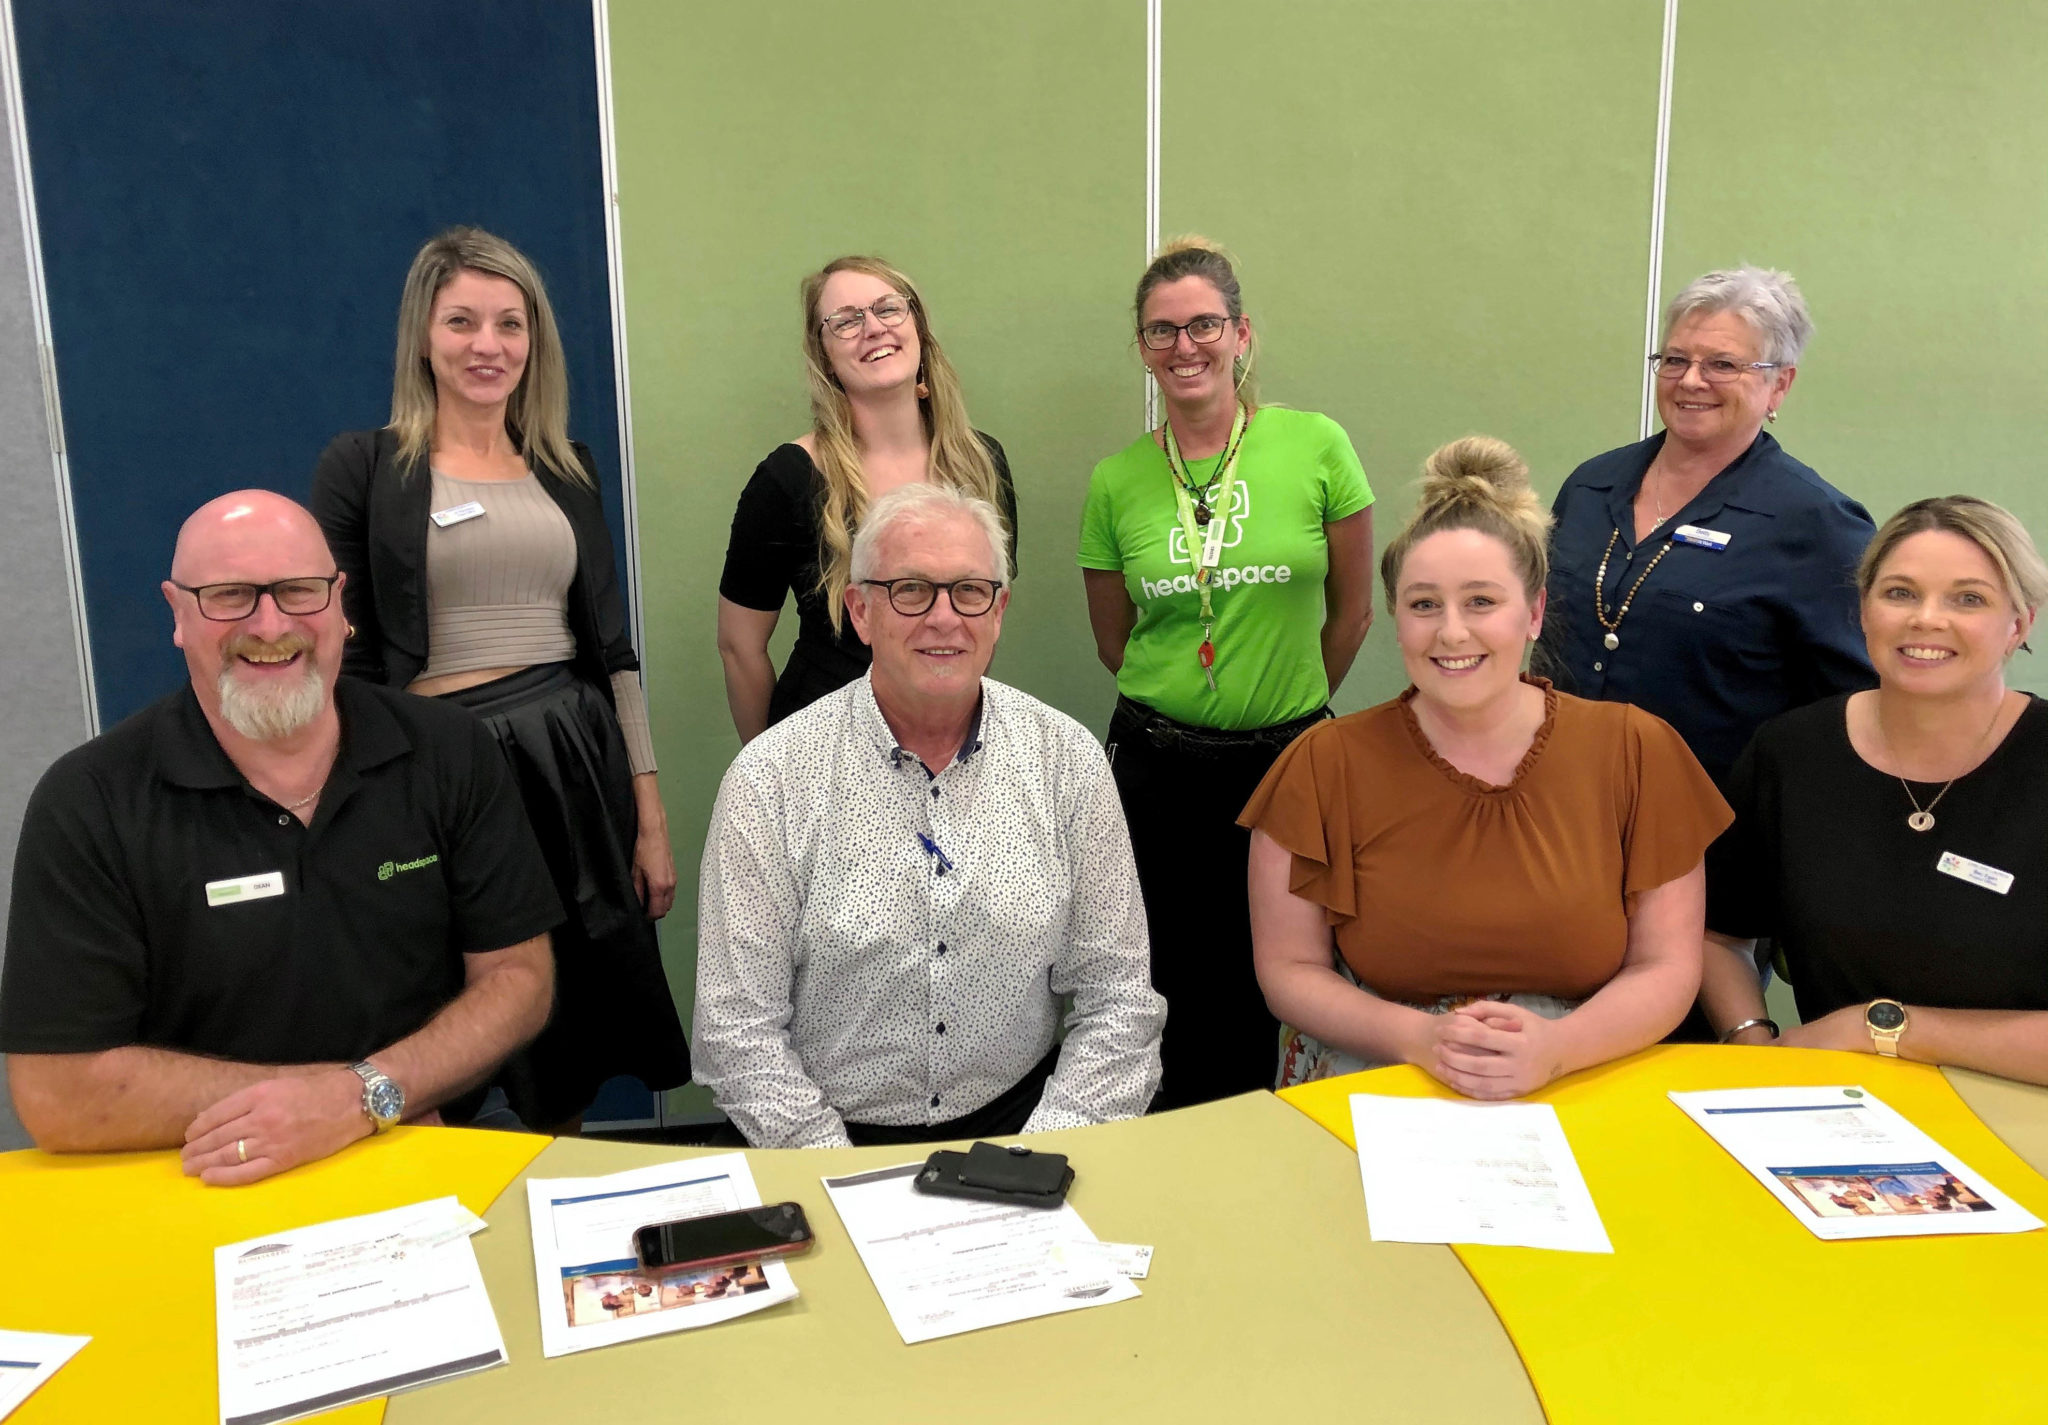 The Bundaberg Jobs Commitment team taking a presentation on successful resume writing to Isis High School this week are (rear from left) Jo Donnison, Sam Jensen, Cristel Simmonds and Betty Lappin. Front (from left) Dean Hyland, Chris Kettle, Amber Lutter and Rebecca Egan.